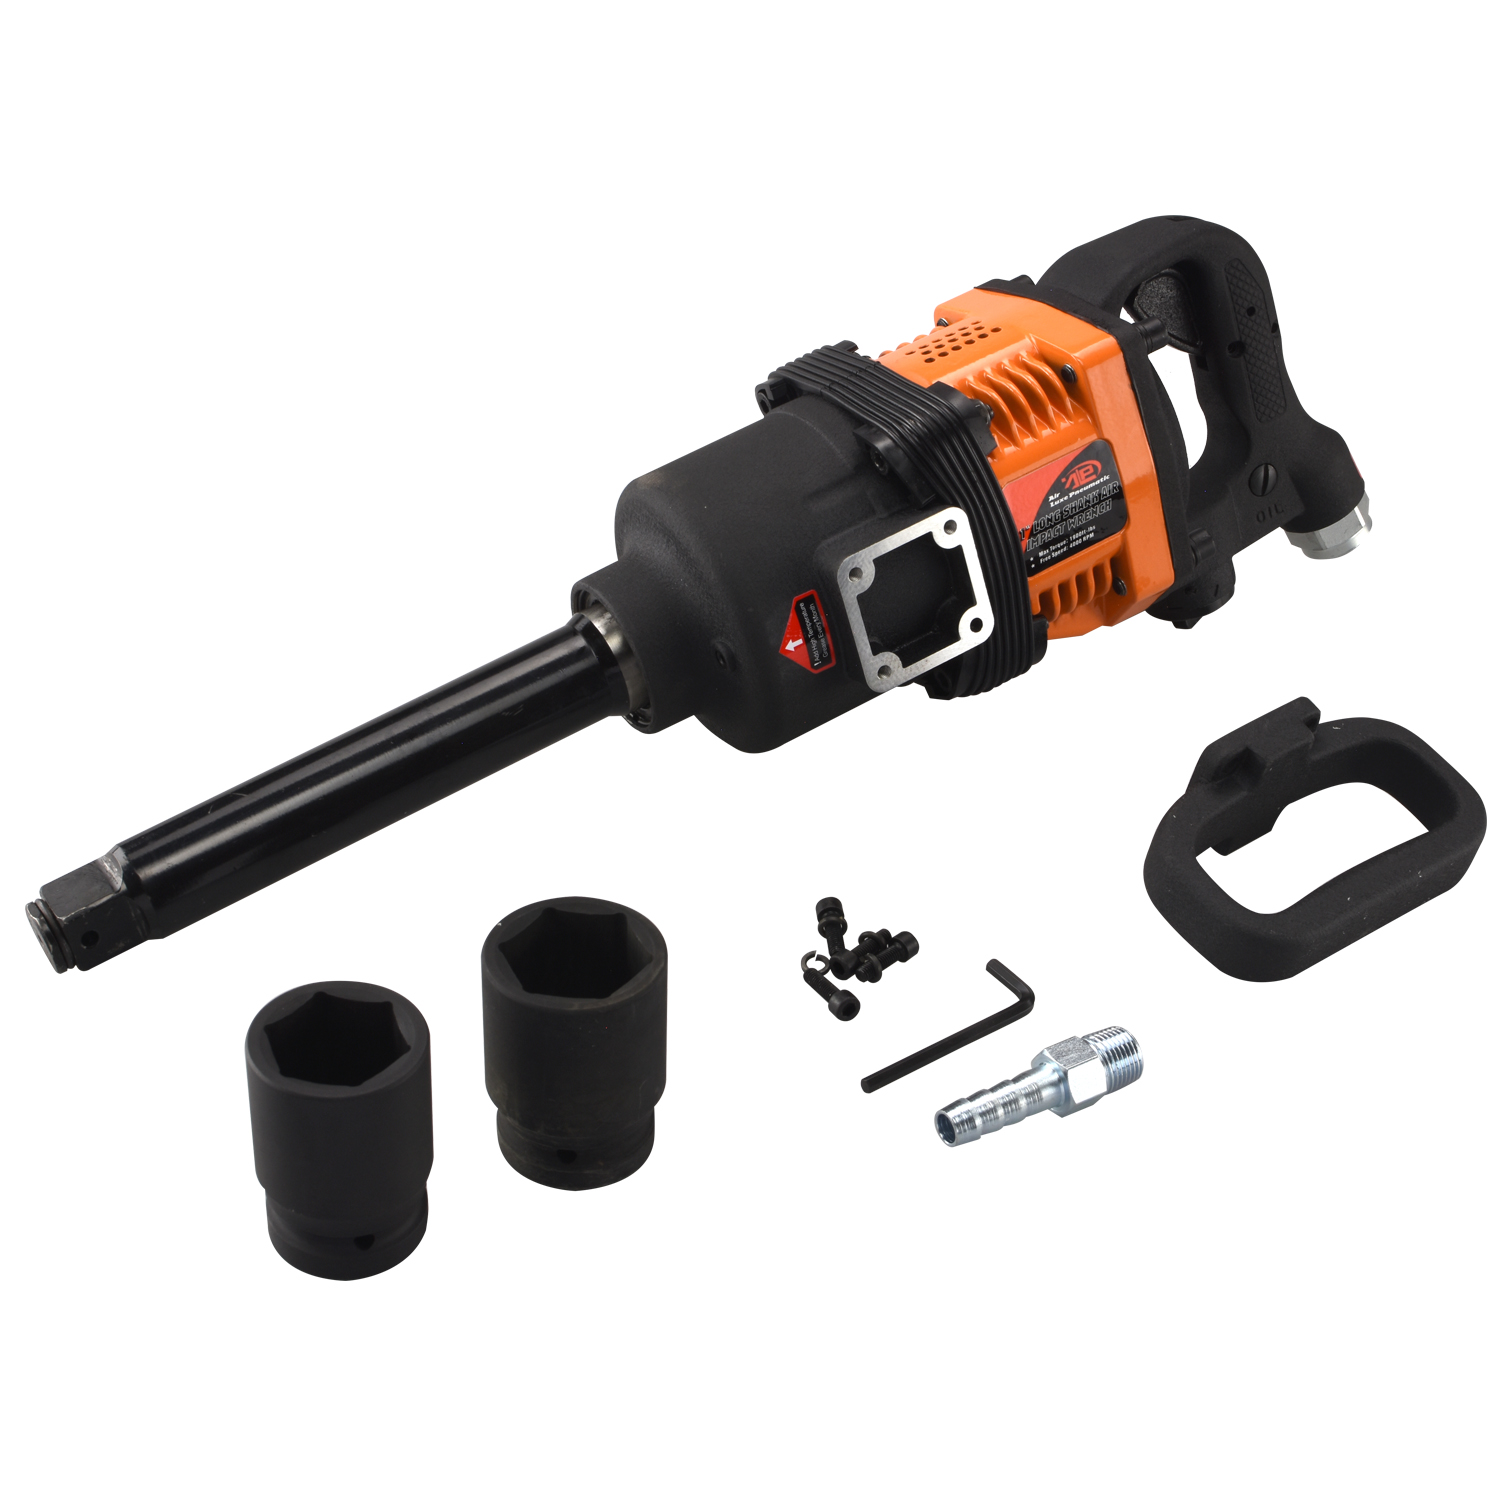 Tooluxe 31414L Industrial Air Impact Wrench, 1-Inch